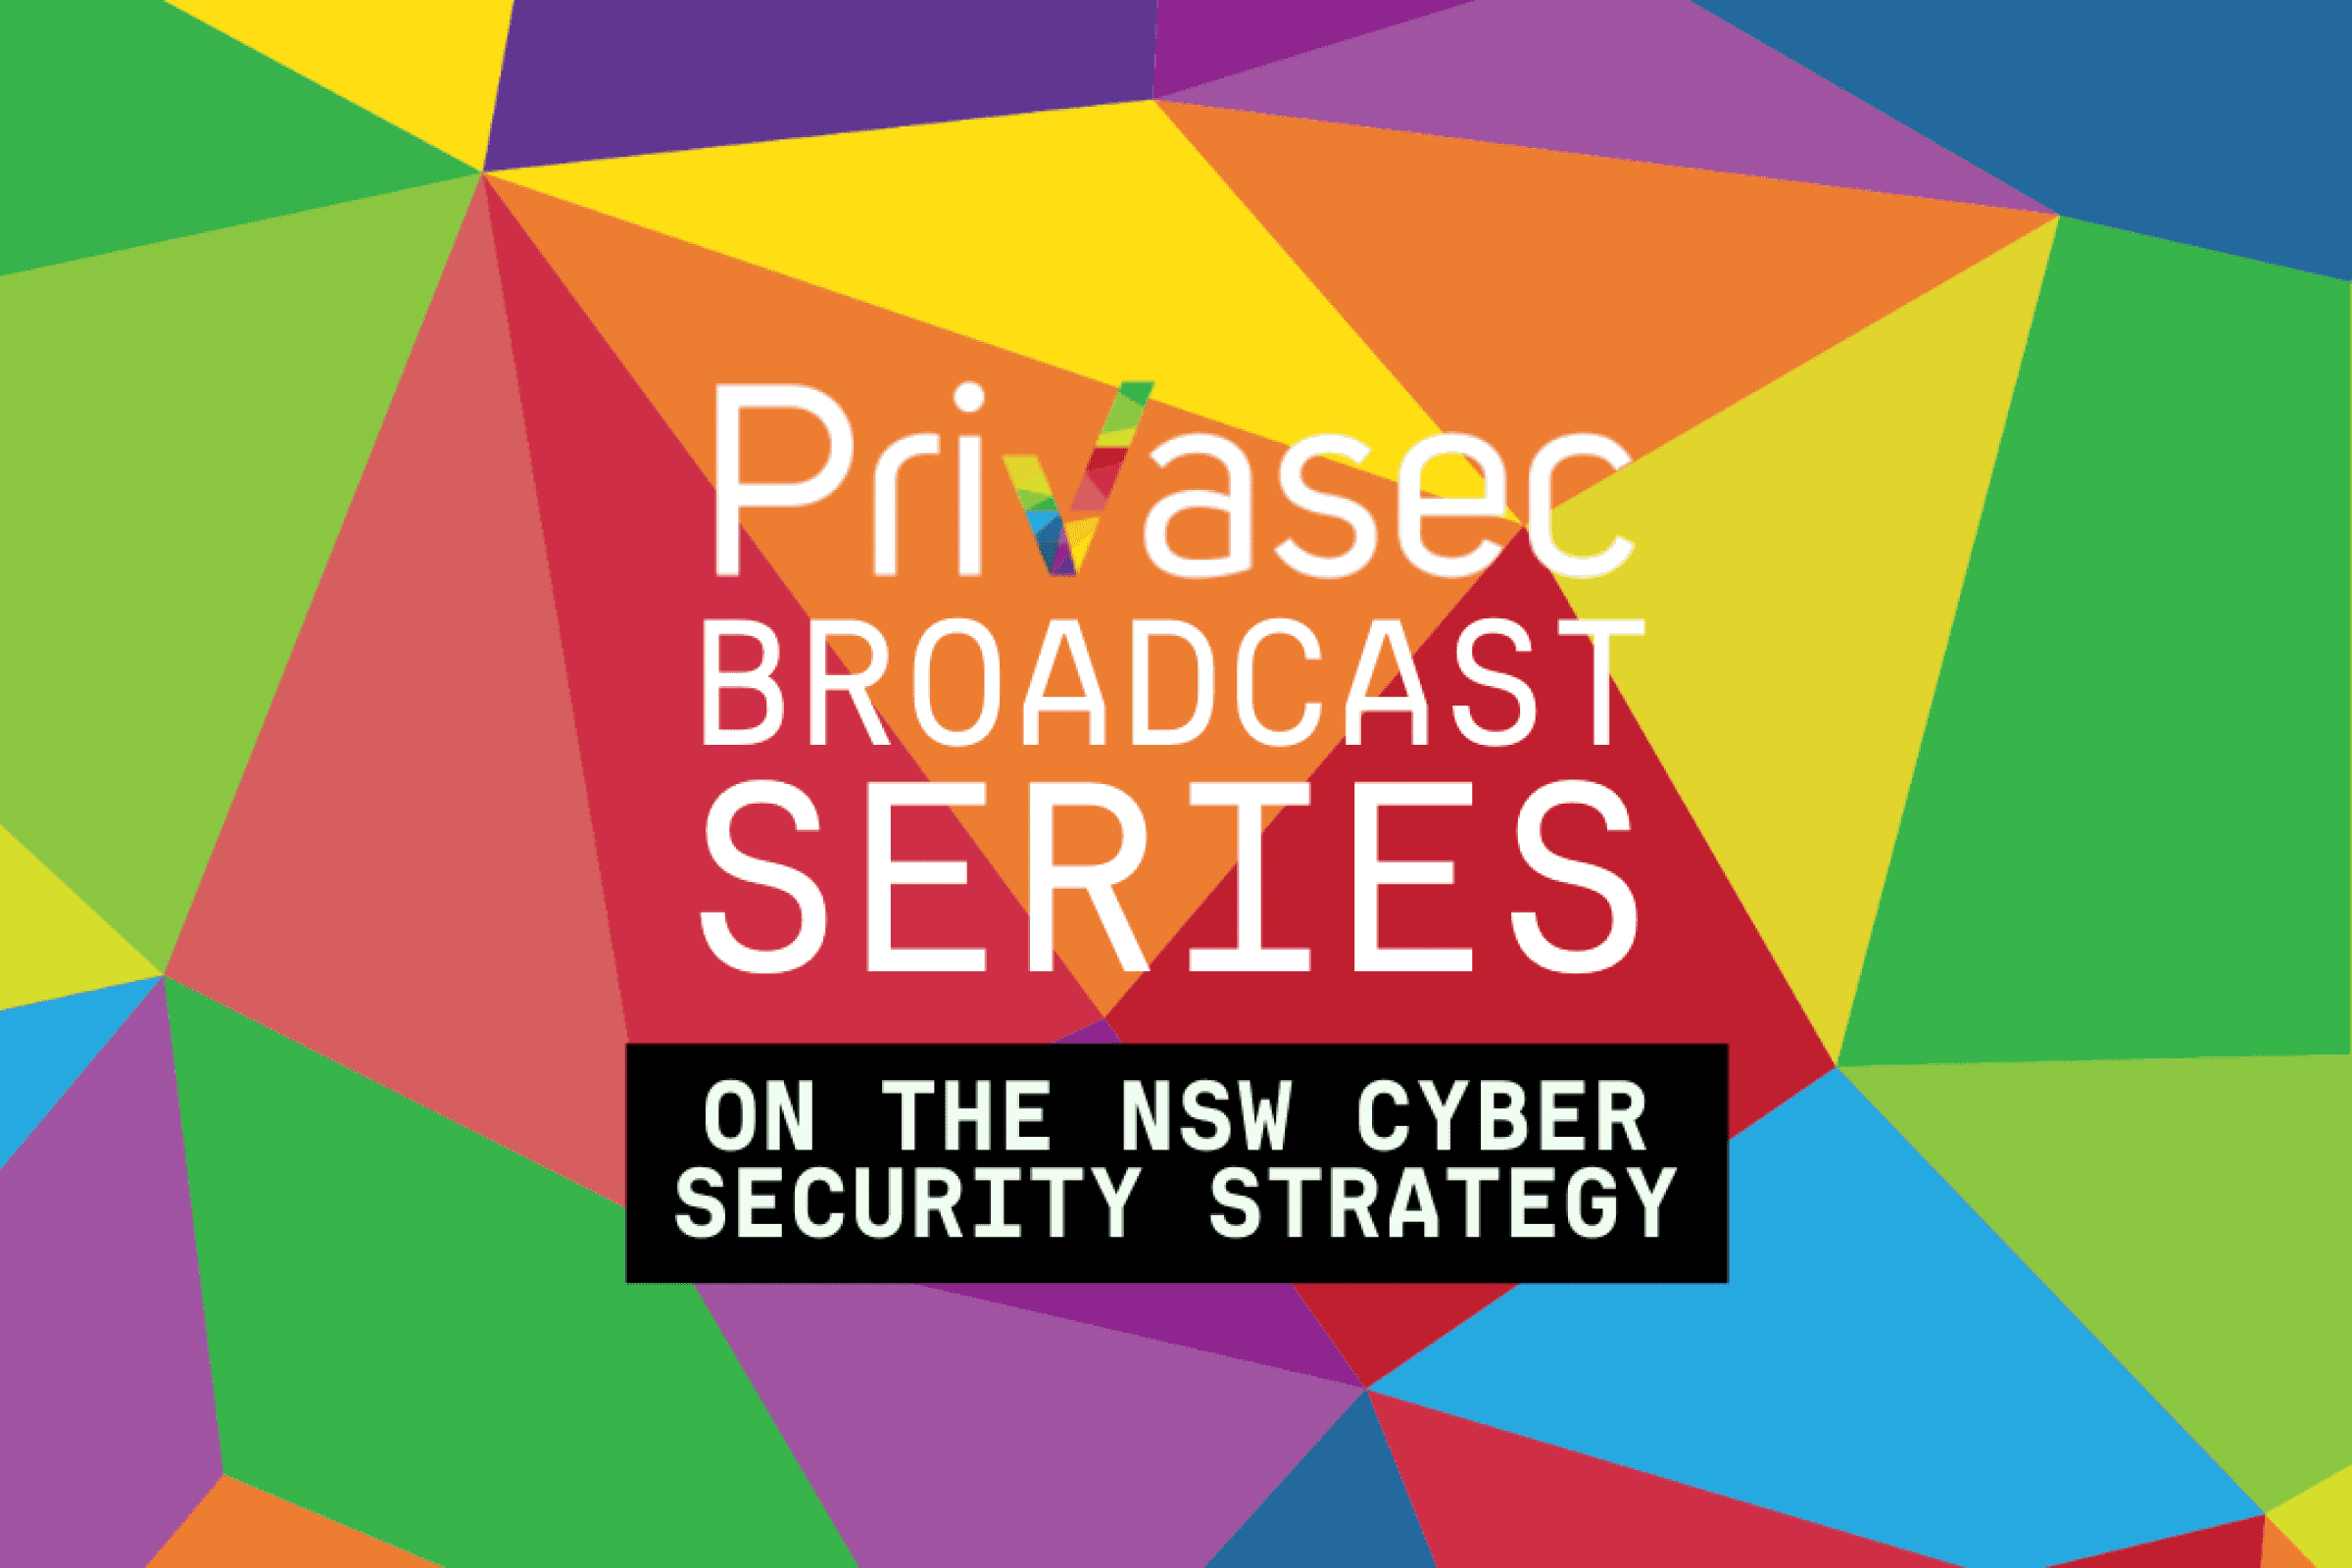 NSW Cyber Security Strategy